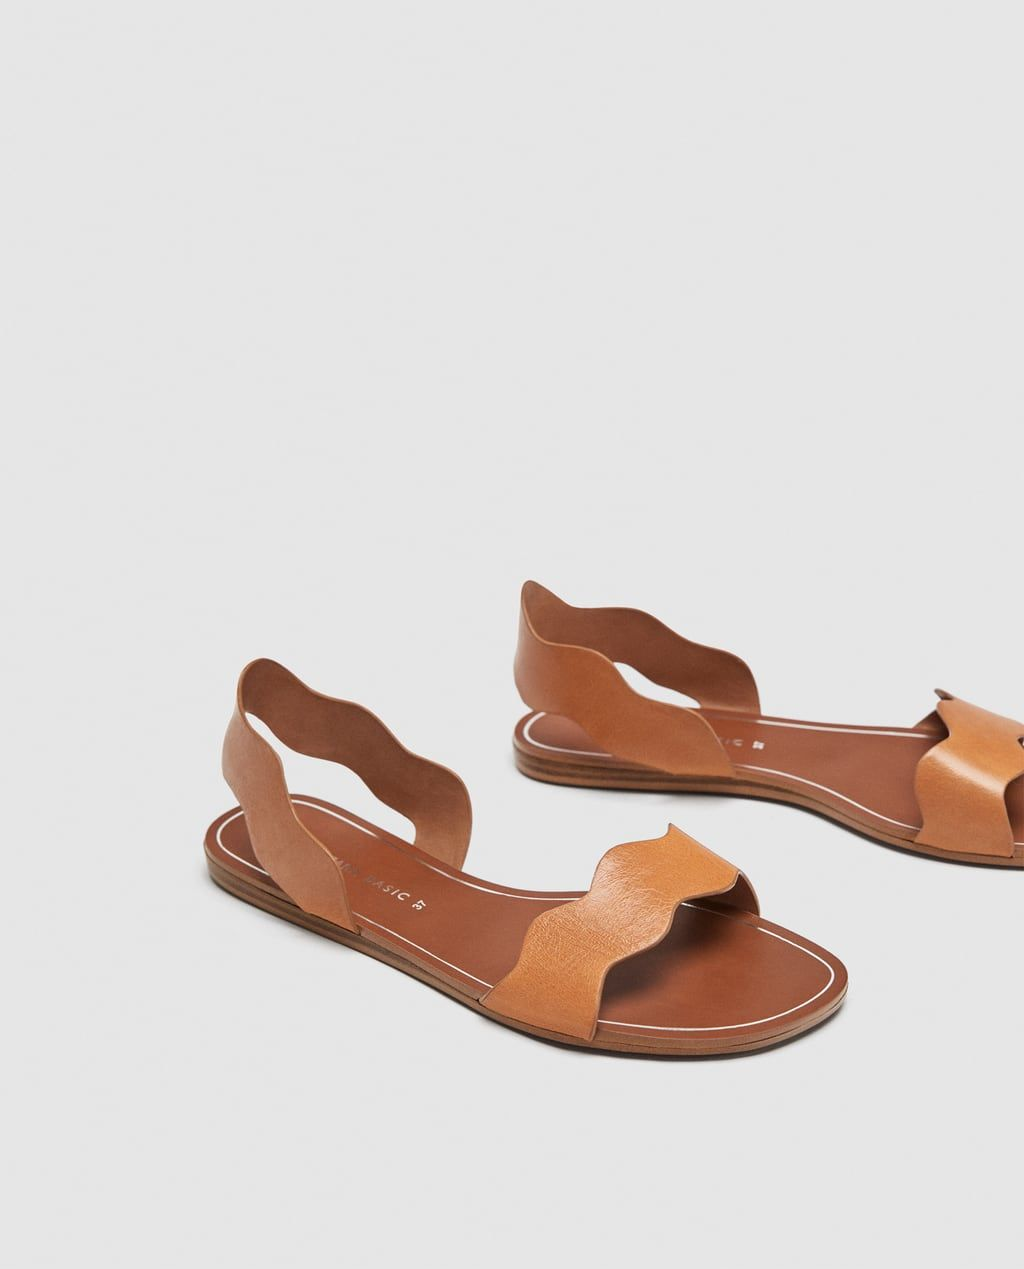 002e1615 Image 2 of LEATHER SLIDES WITH WAVY STRAPS from Zara   Life & Style ...